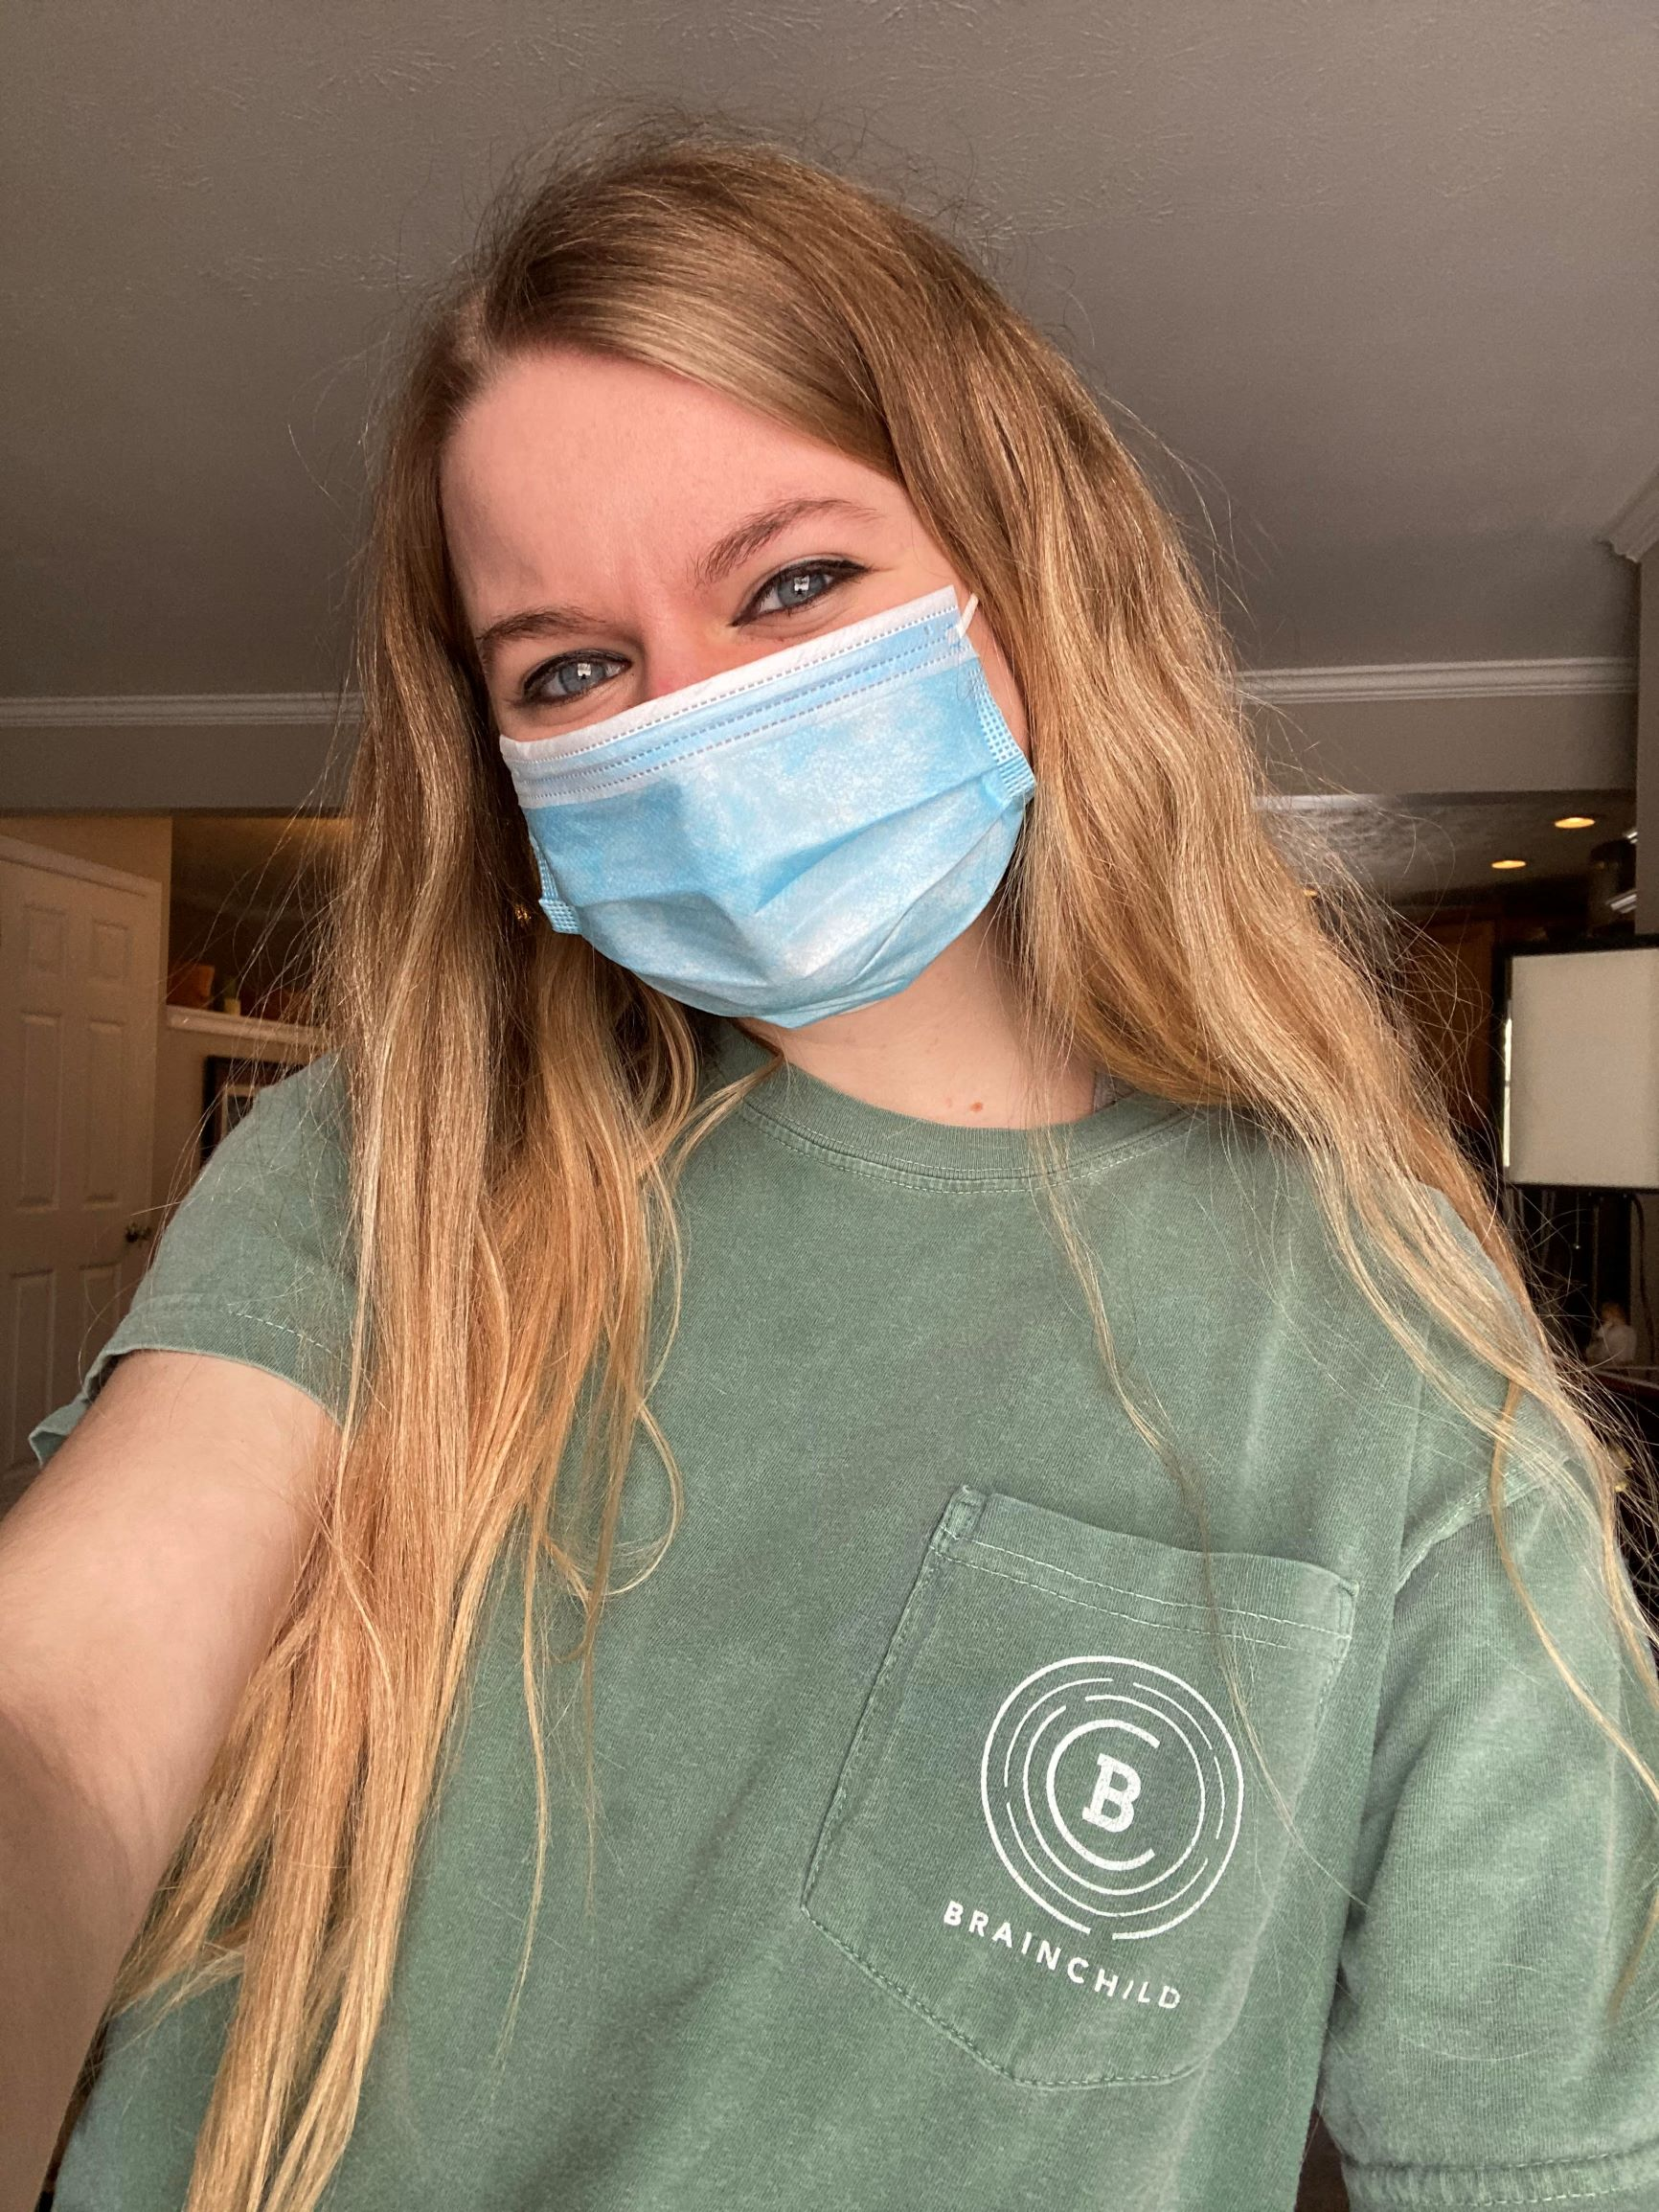 Megan Hamilton, Editor-in-Chief of Brainchild, wearing a mask at her home in Stow